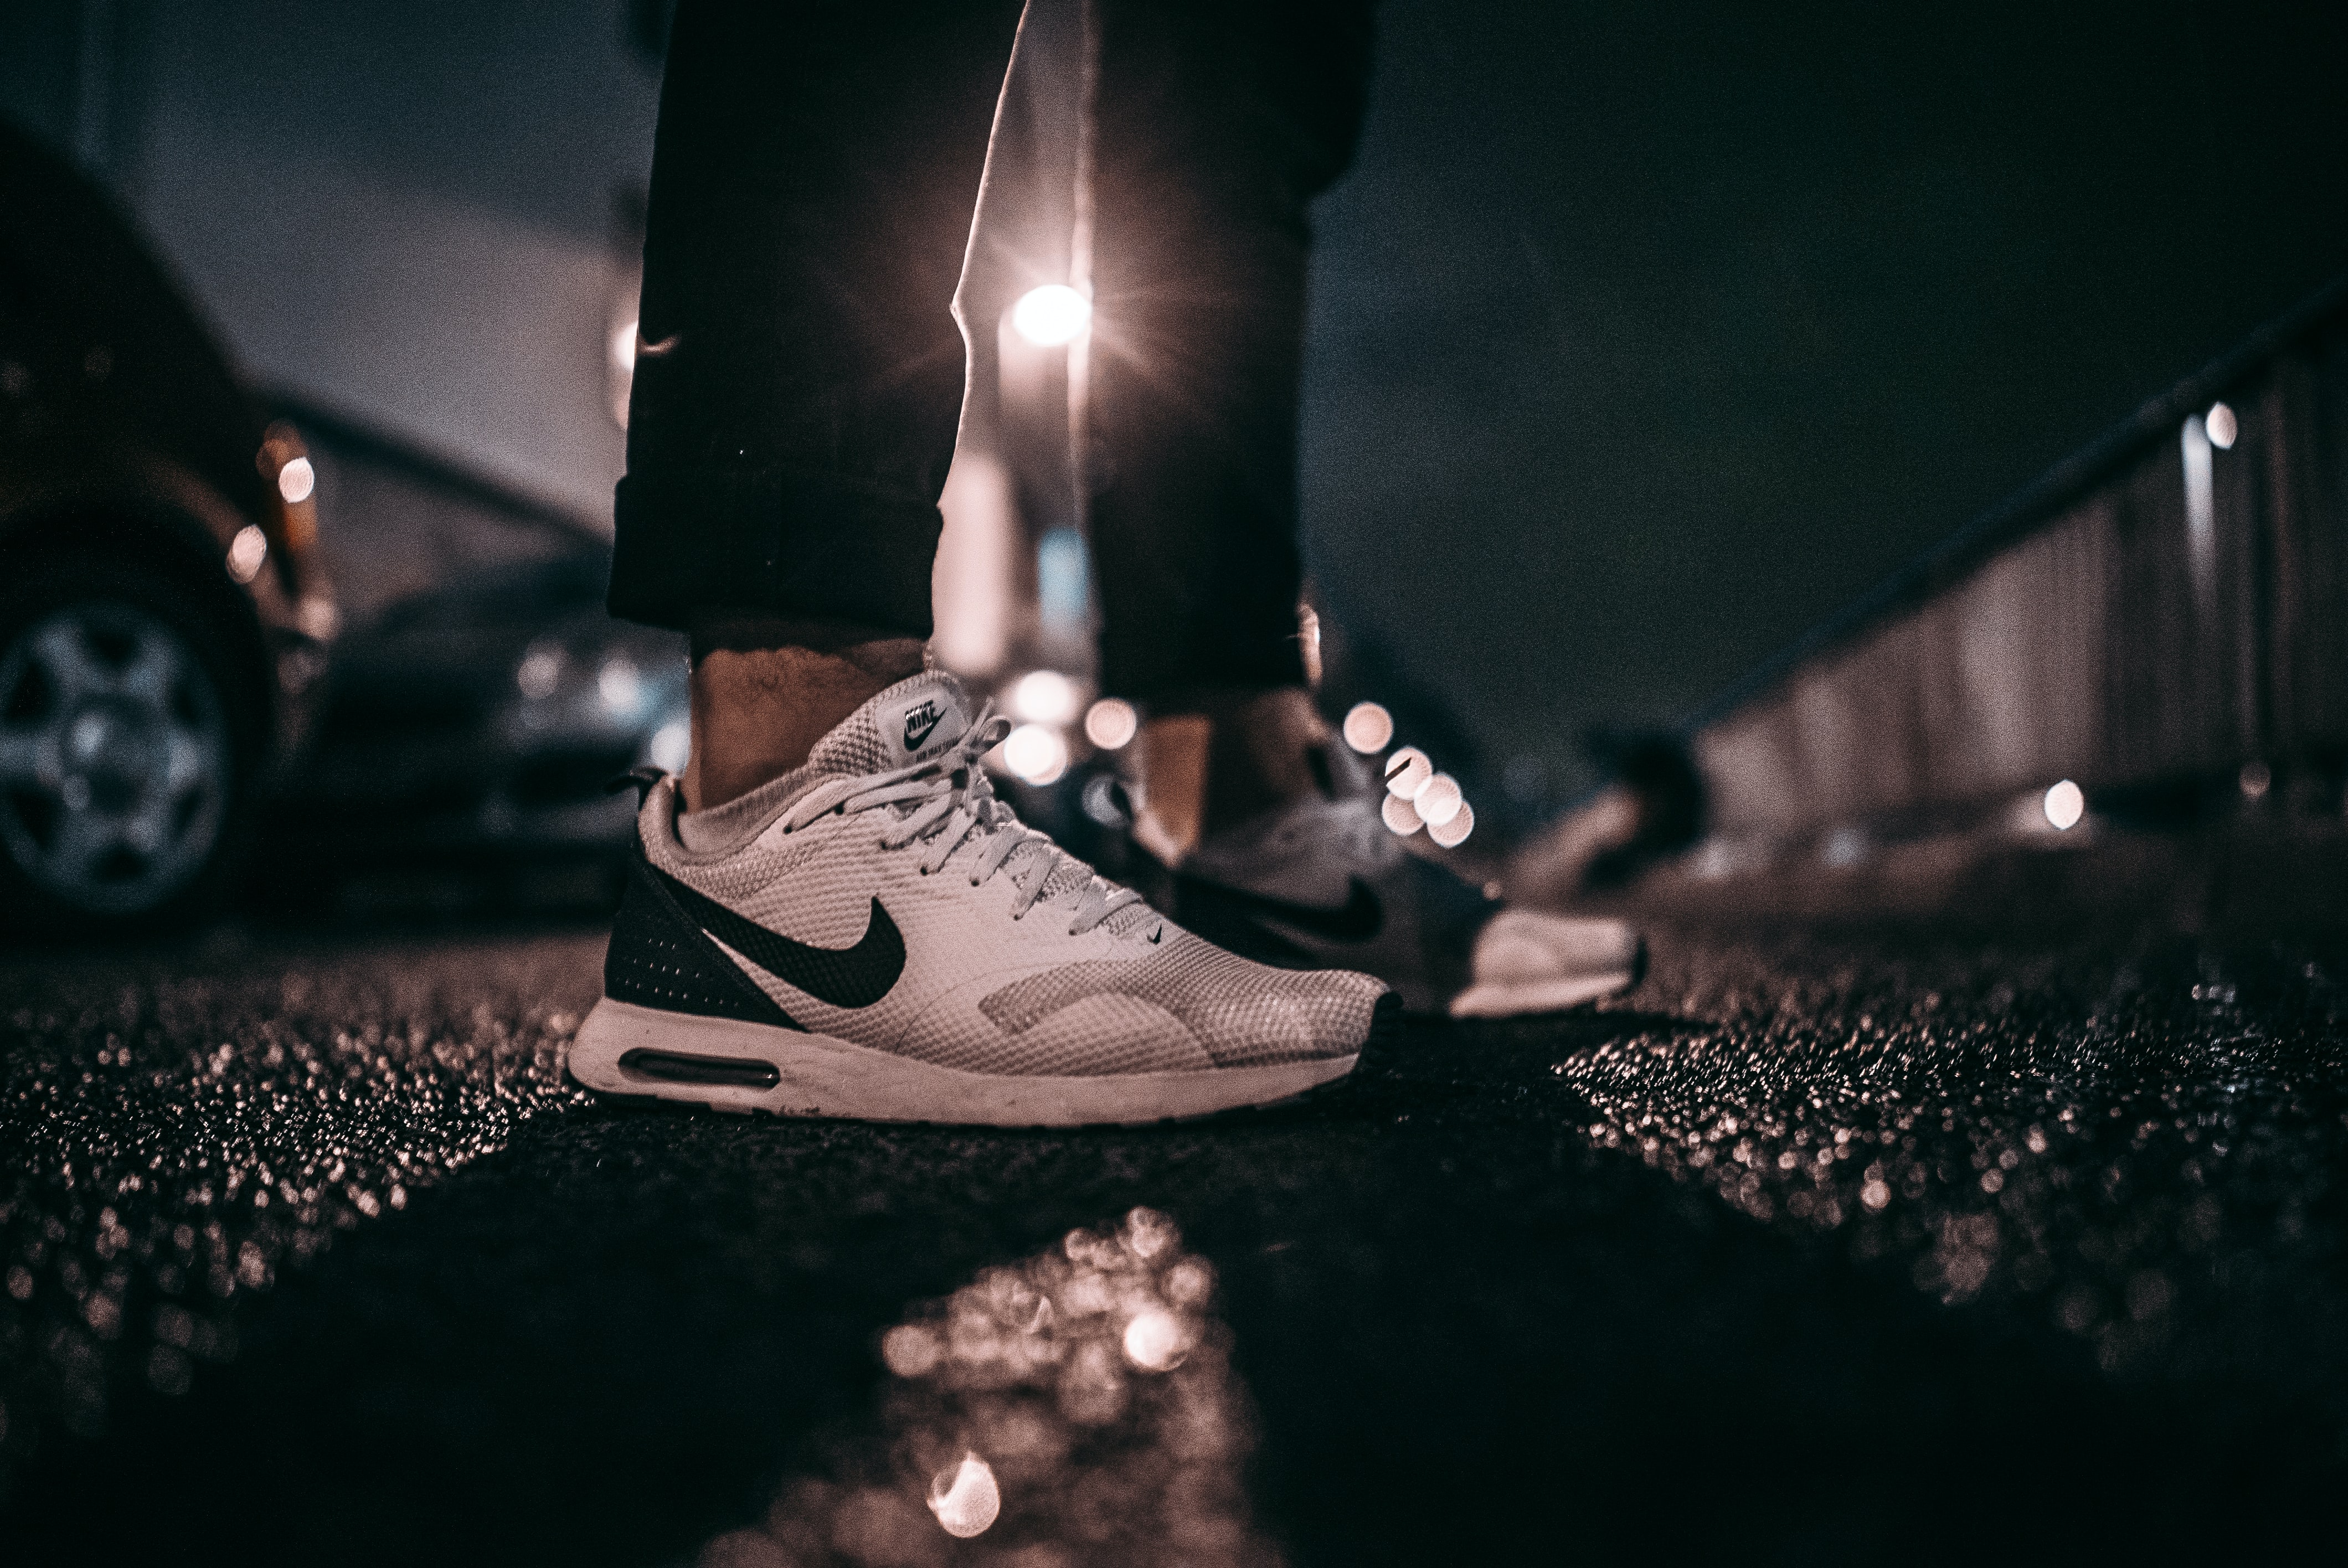 person wearing white and black Nike shoes